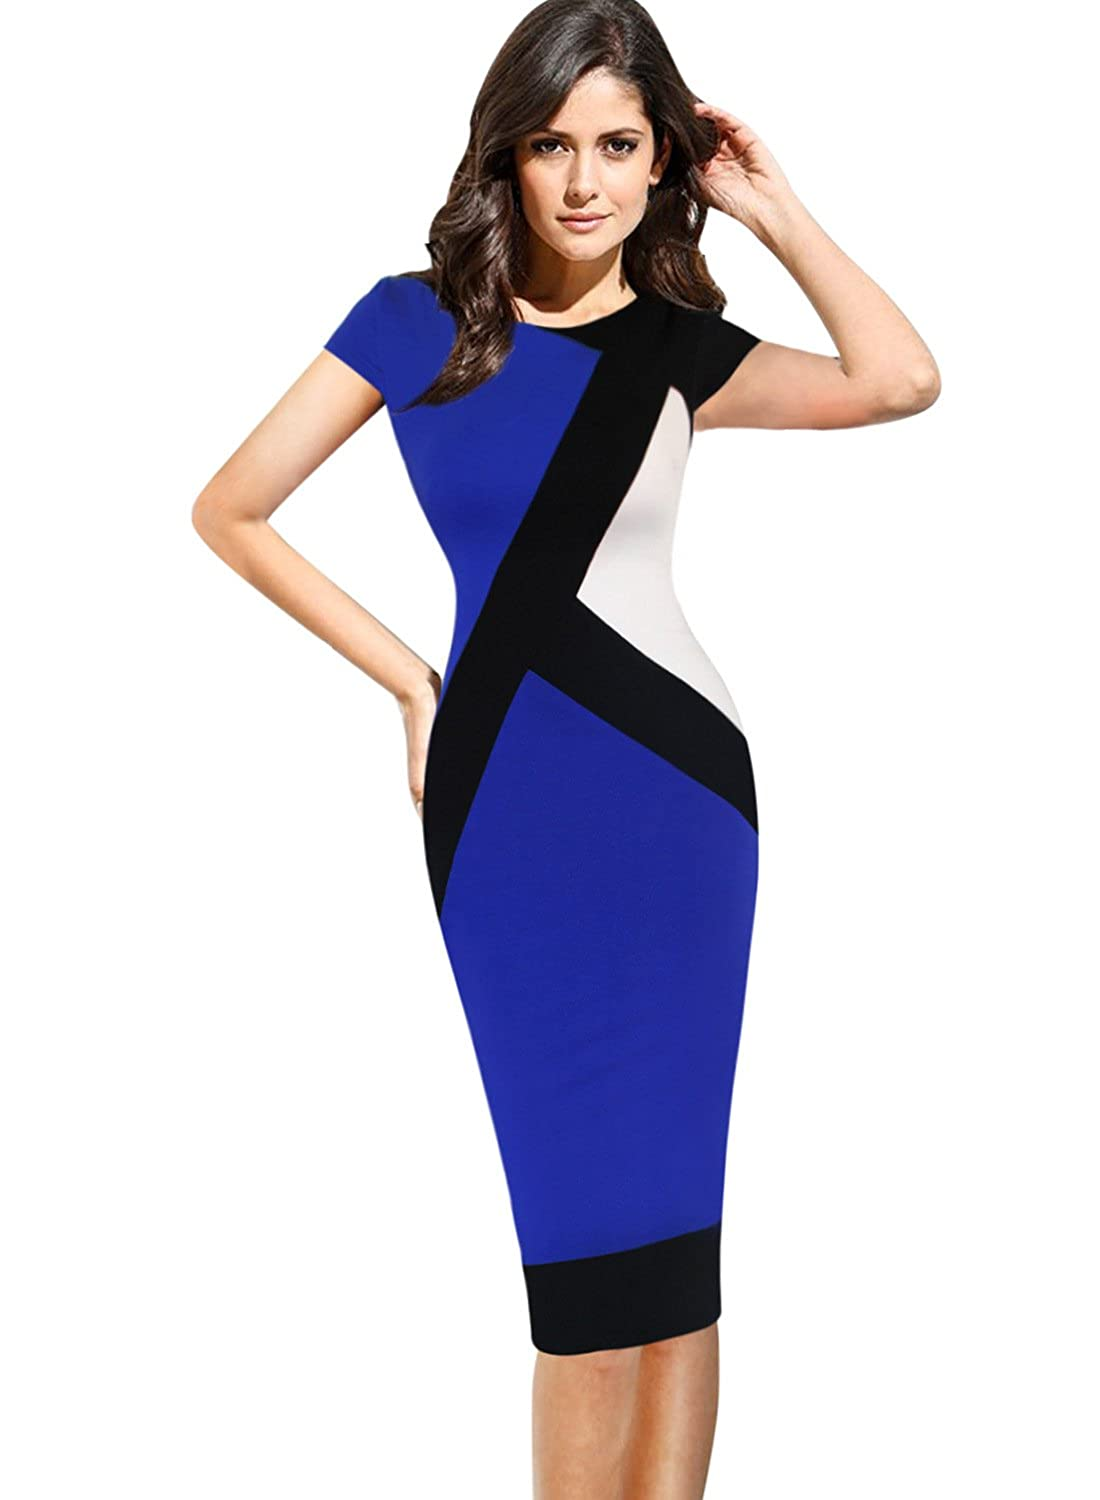 d6959f34120 Top5: VfEmage Womens Elegant Optical Illusion Contrast Wear to Work Dress